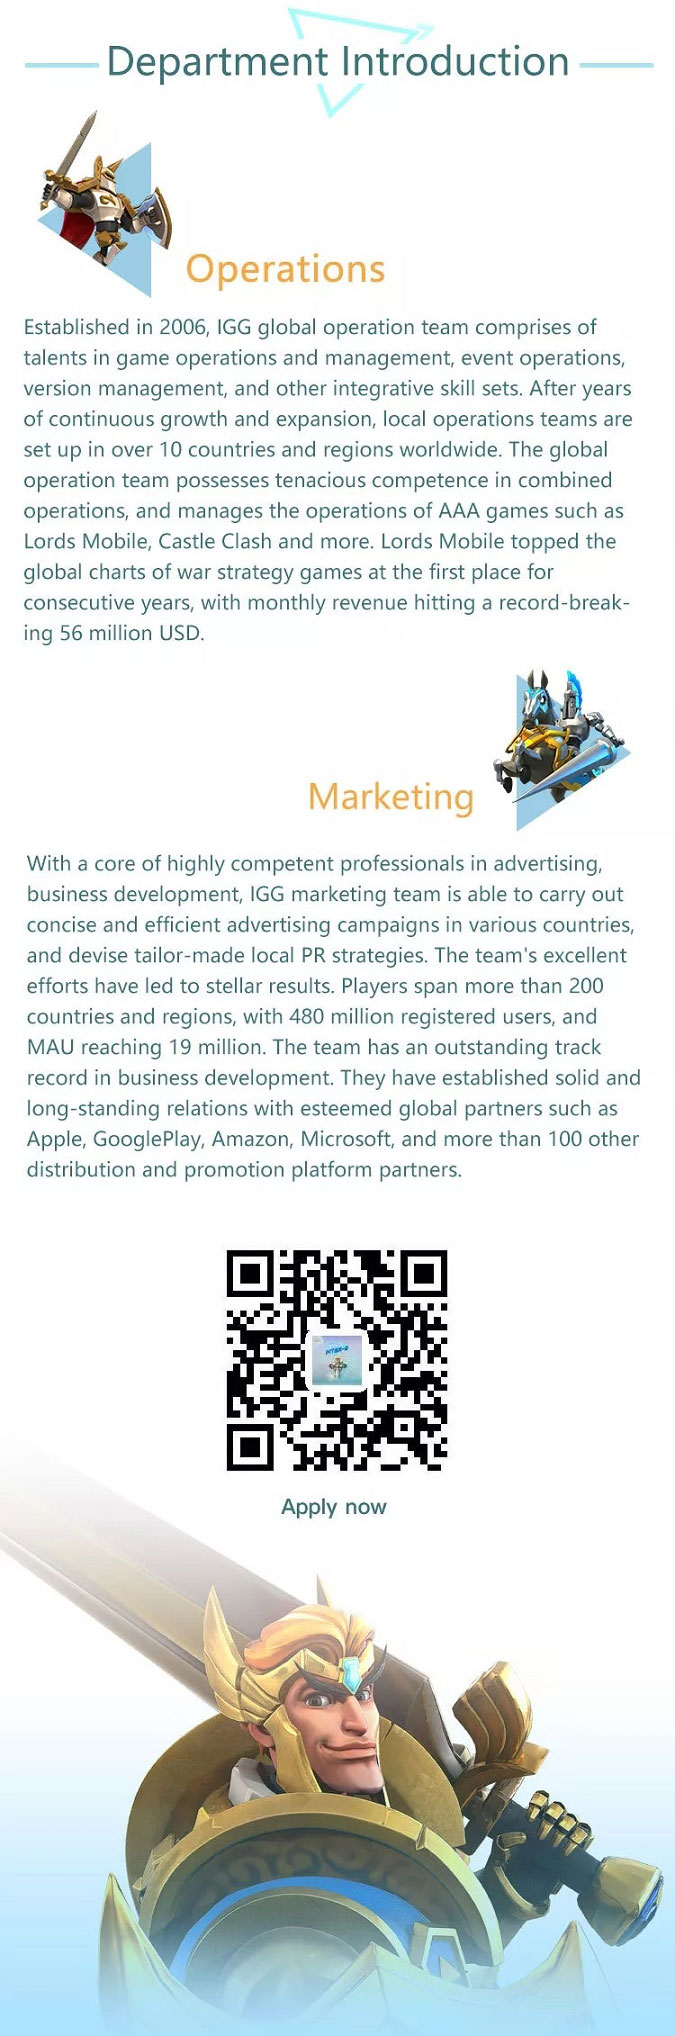 Join the World's Leading Game Developer IGG! Join Inter-G!